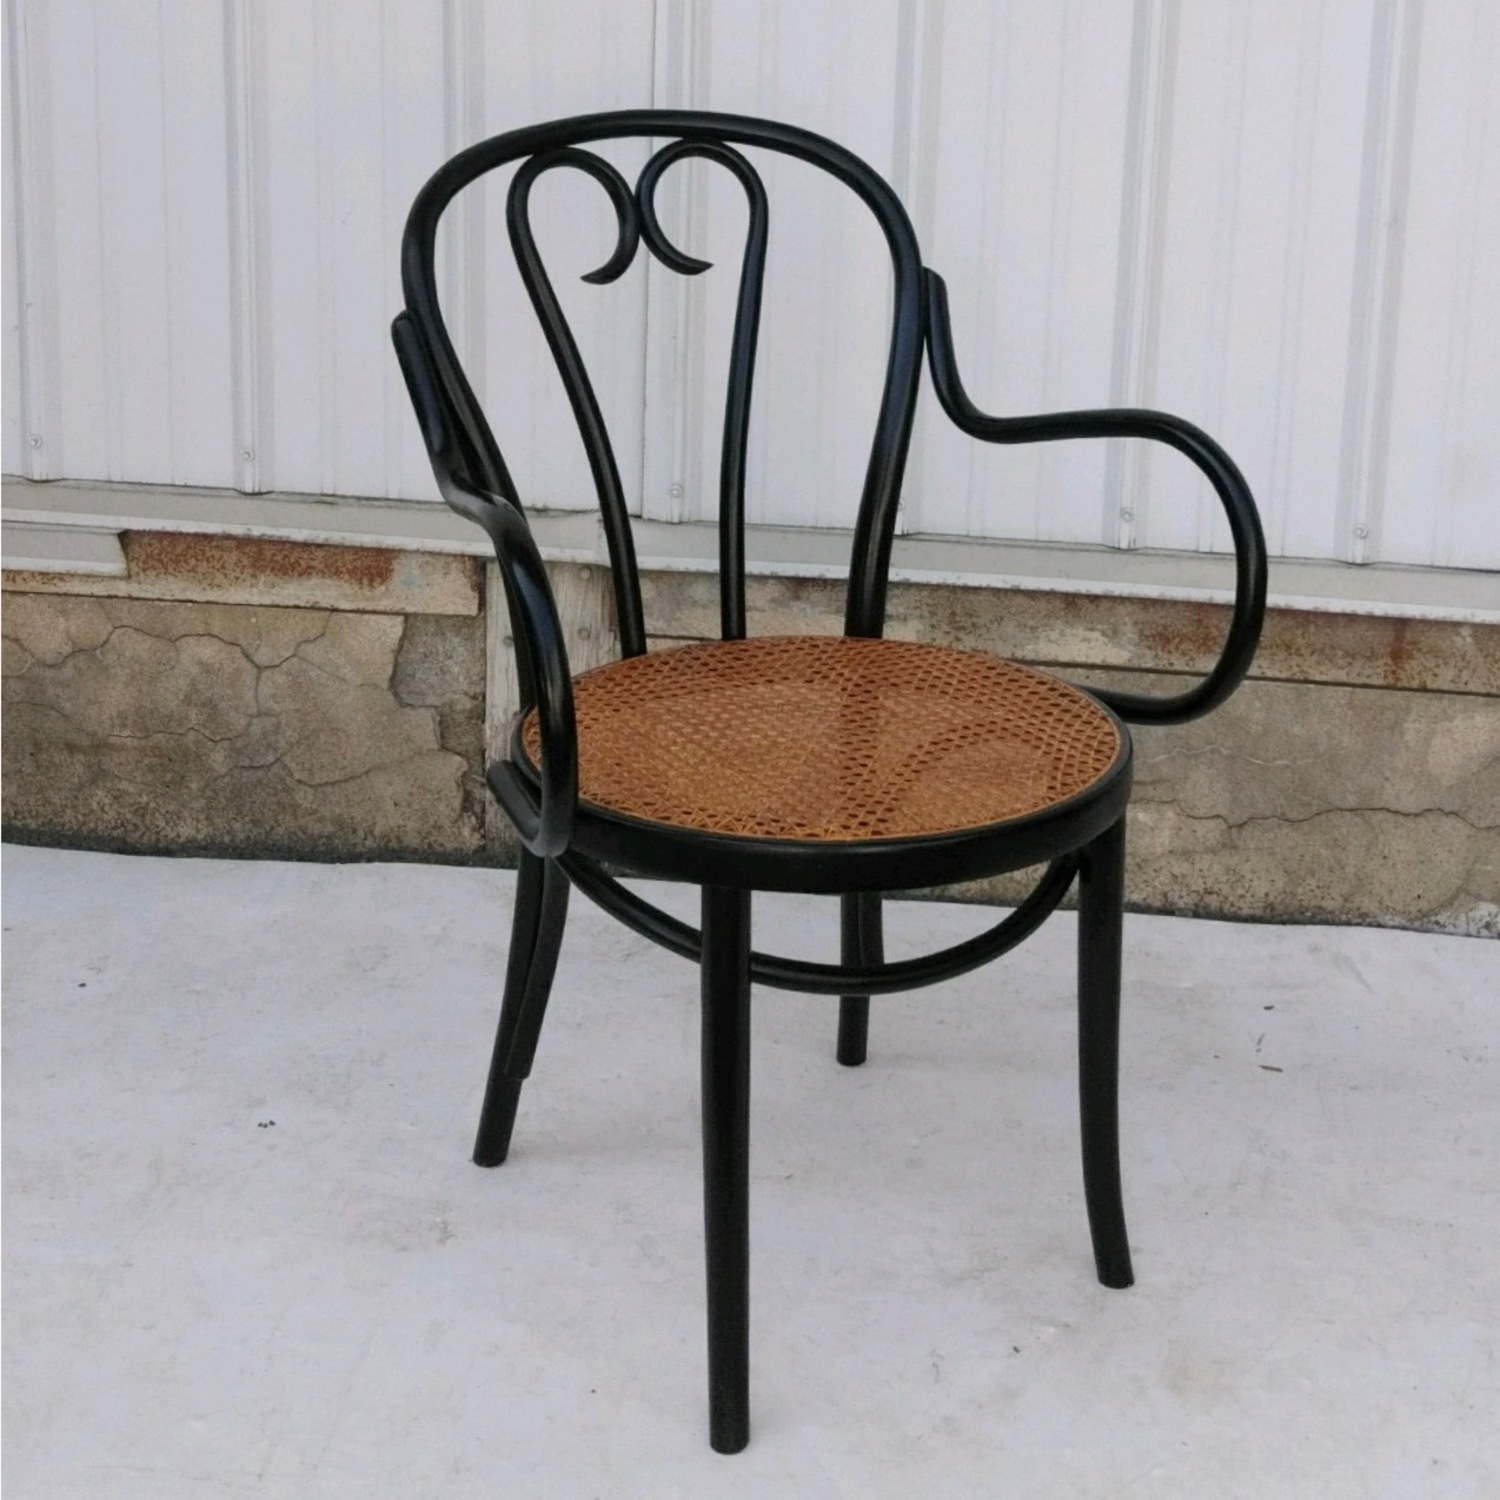 Vintage Cane Seat Accent Chair - image-4